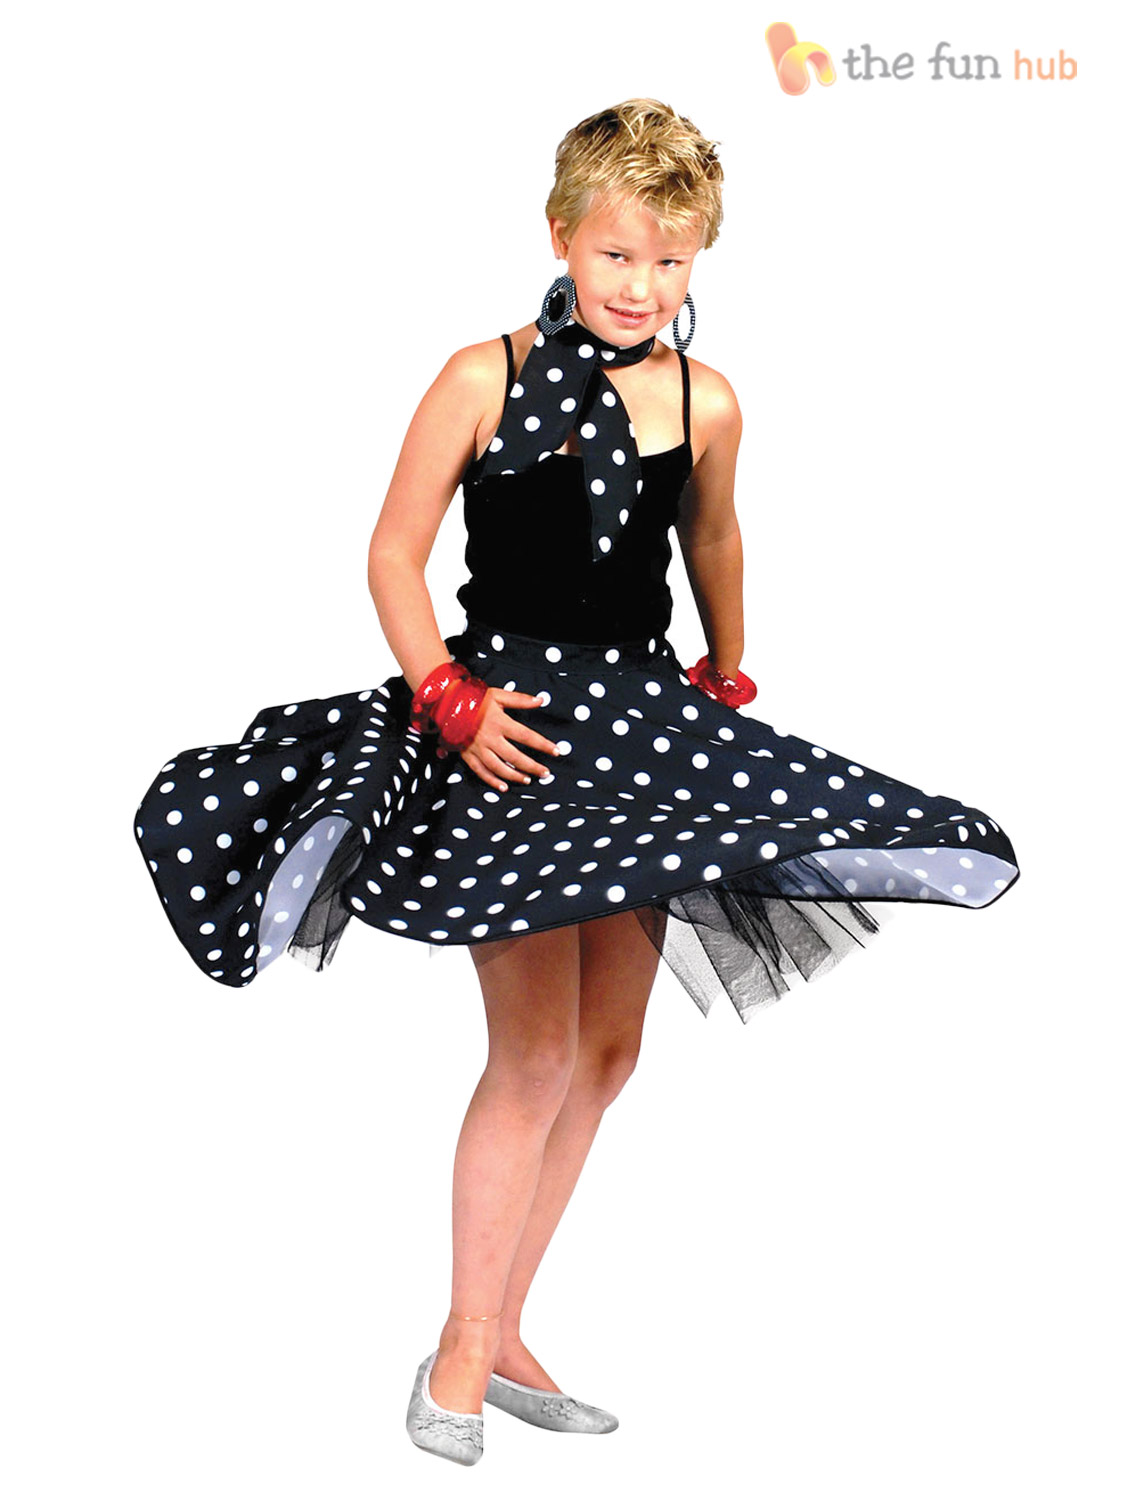 Annees-50-rock-n-roll-robe-fantaisie-fille-annees-1950-jazz-Bopper-kids-enfant-costume-Outfit